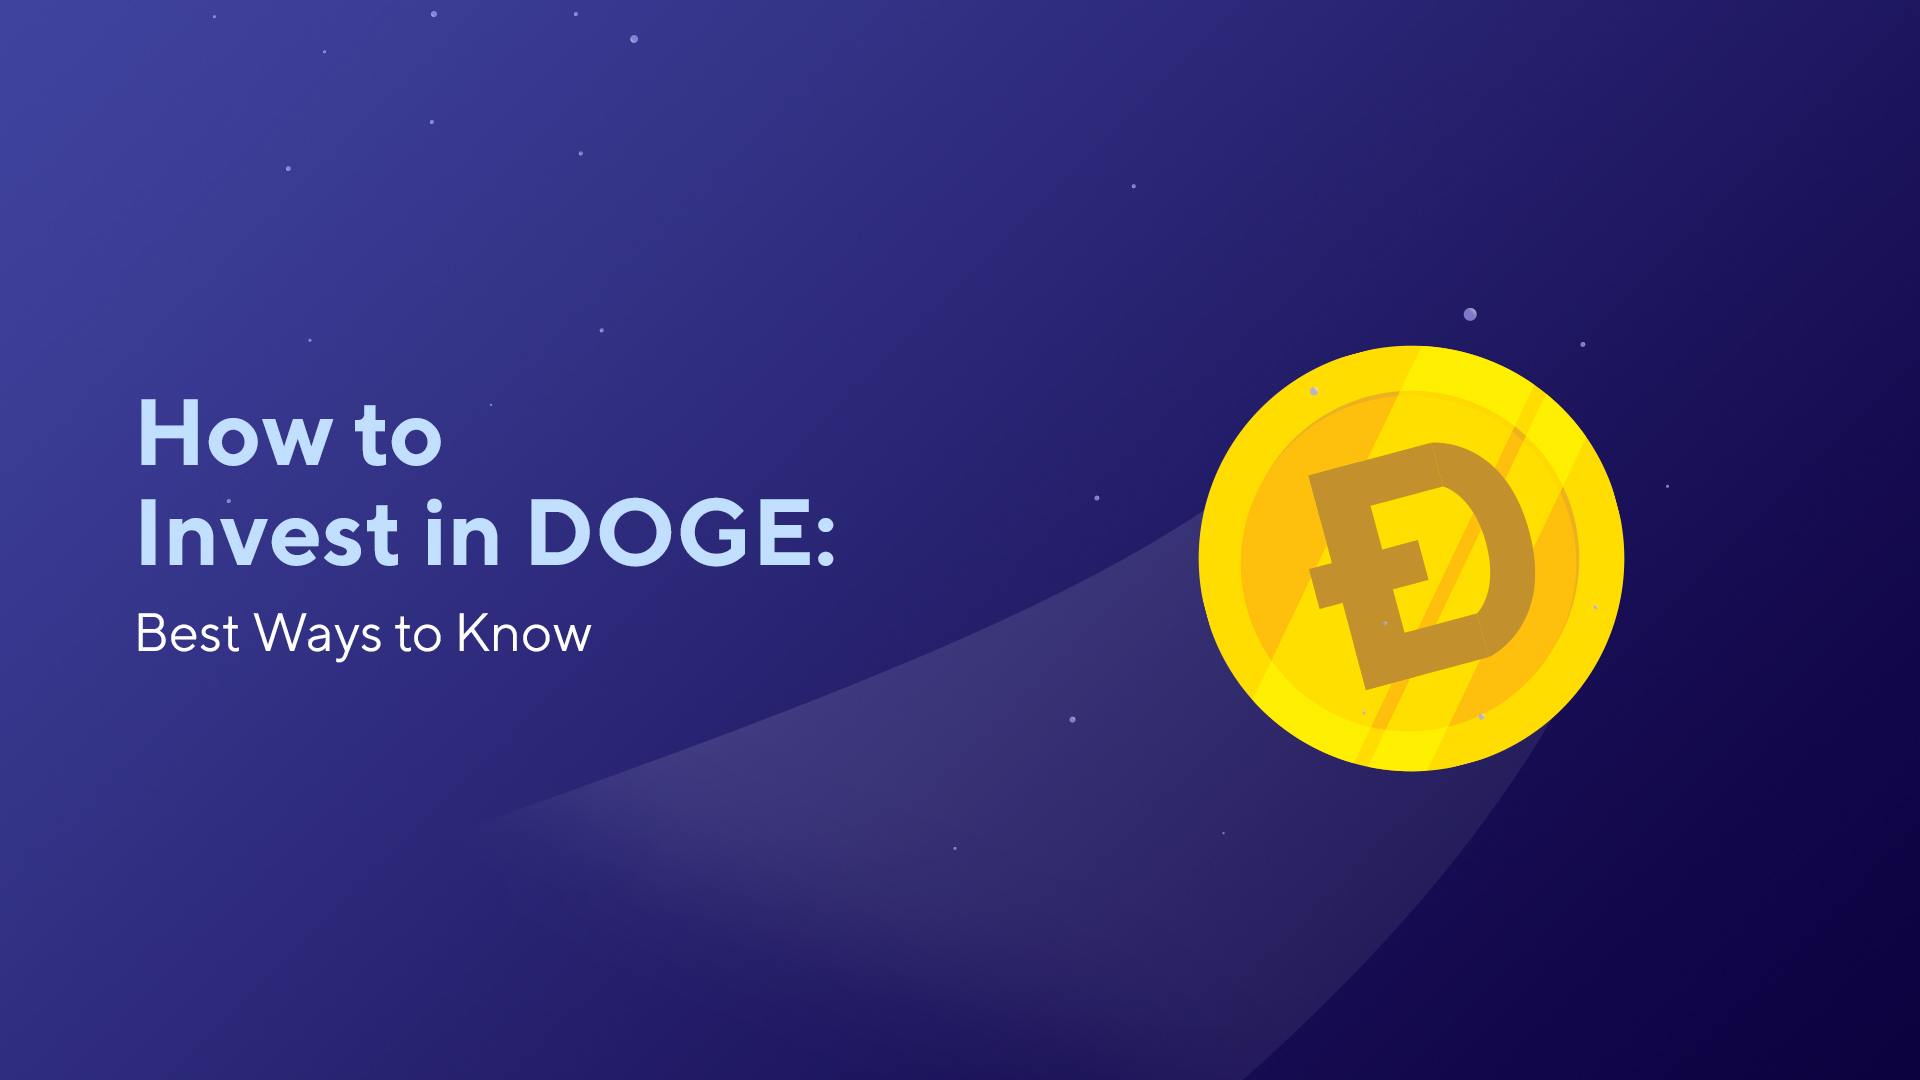 How to Invest in DOGE: Best Ways to Know